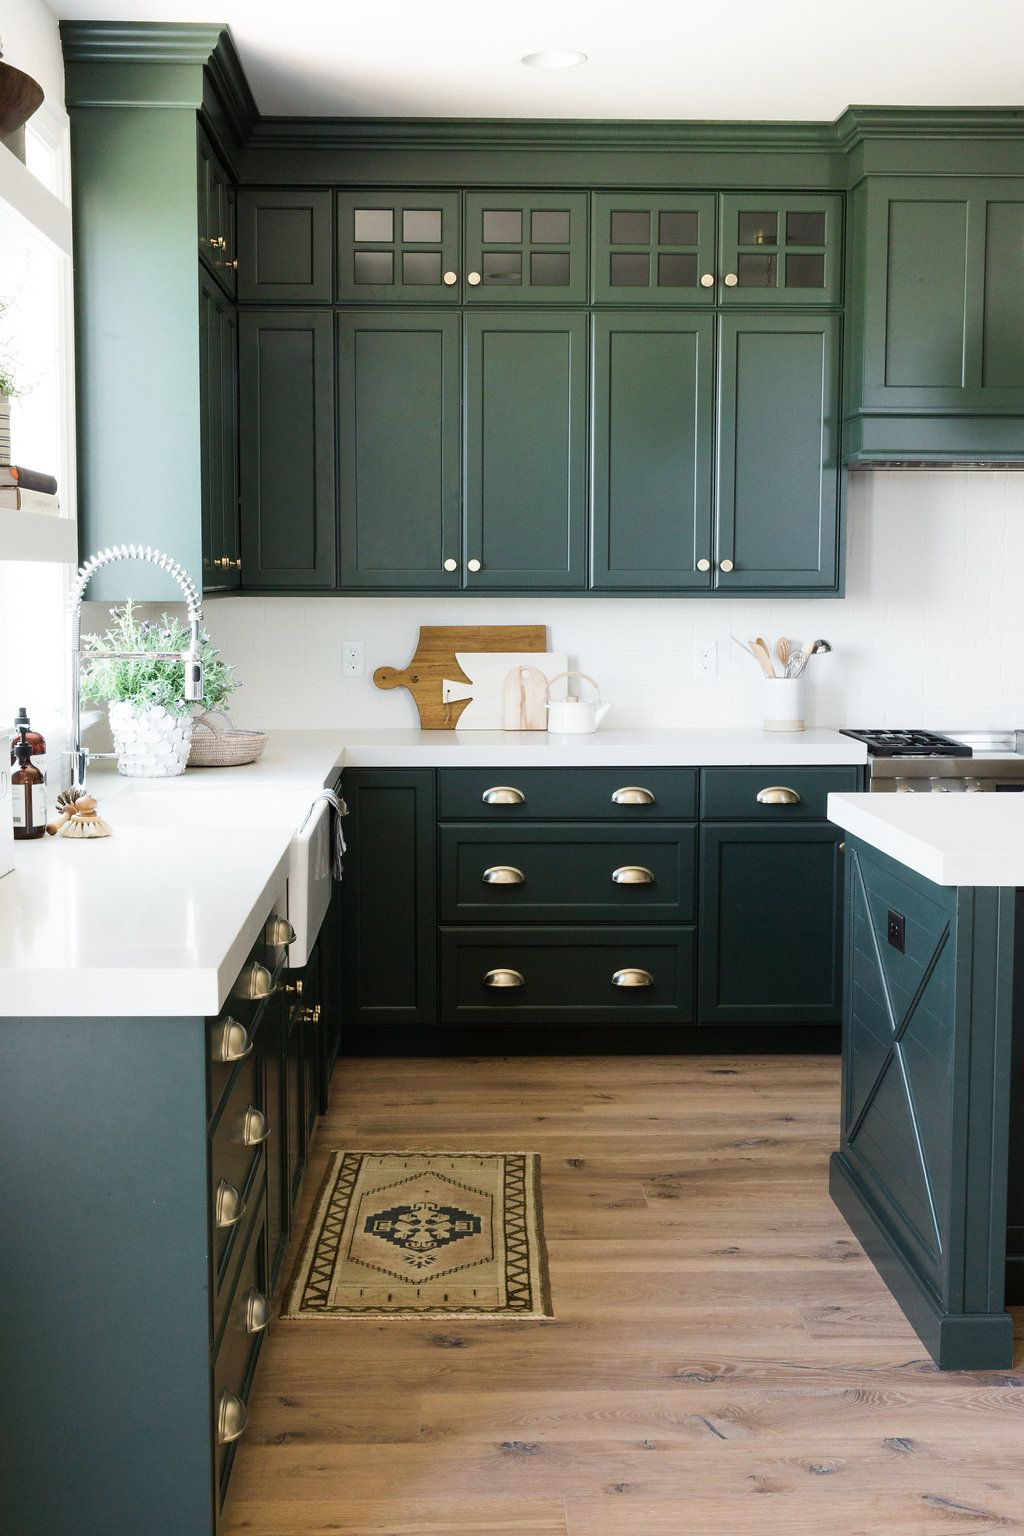 white house floor1 green roomjpg. BEAUTIFUL Dark Green Kitchen Cabinets With White Counters \u0026 Wood Floors! || Tour Part One Of Our Parade Home! Studio McGee House Floor1 Roomjpg